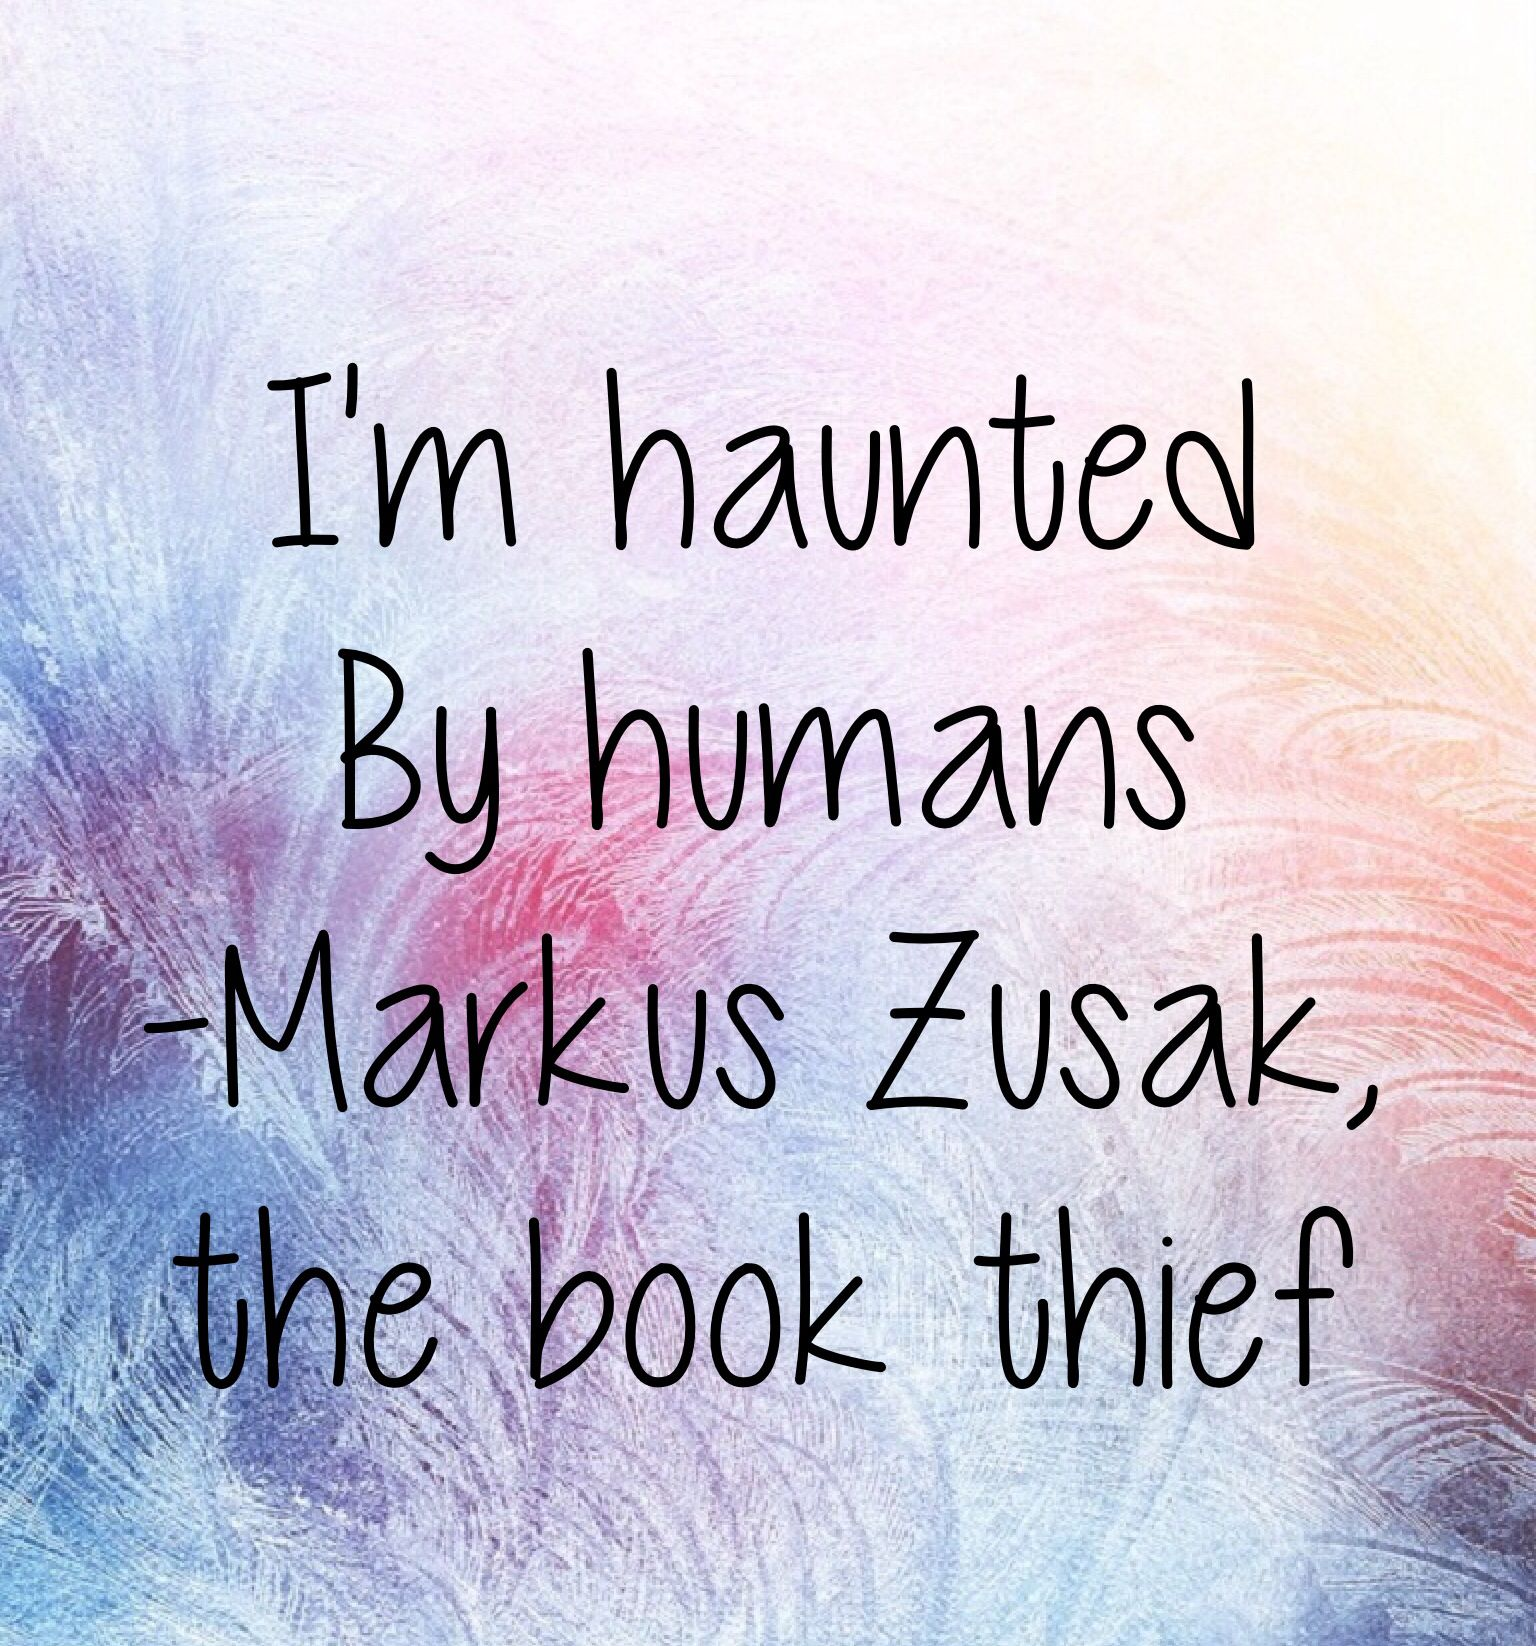 The Book Thief Quotes Quote From The Book Thief  Quotes  Pinterest